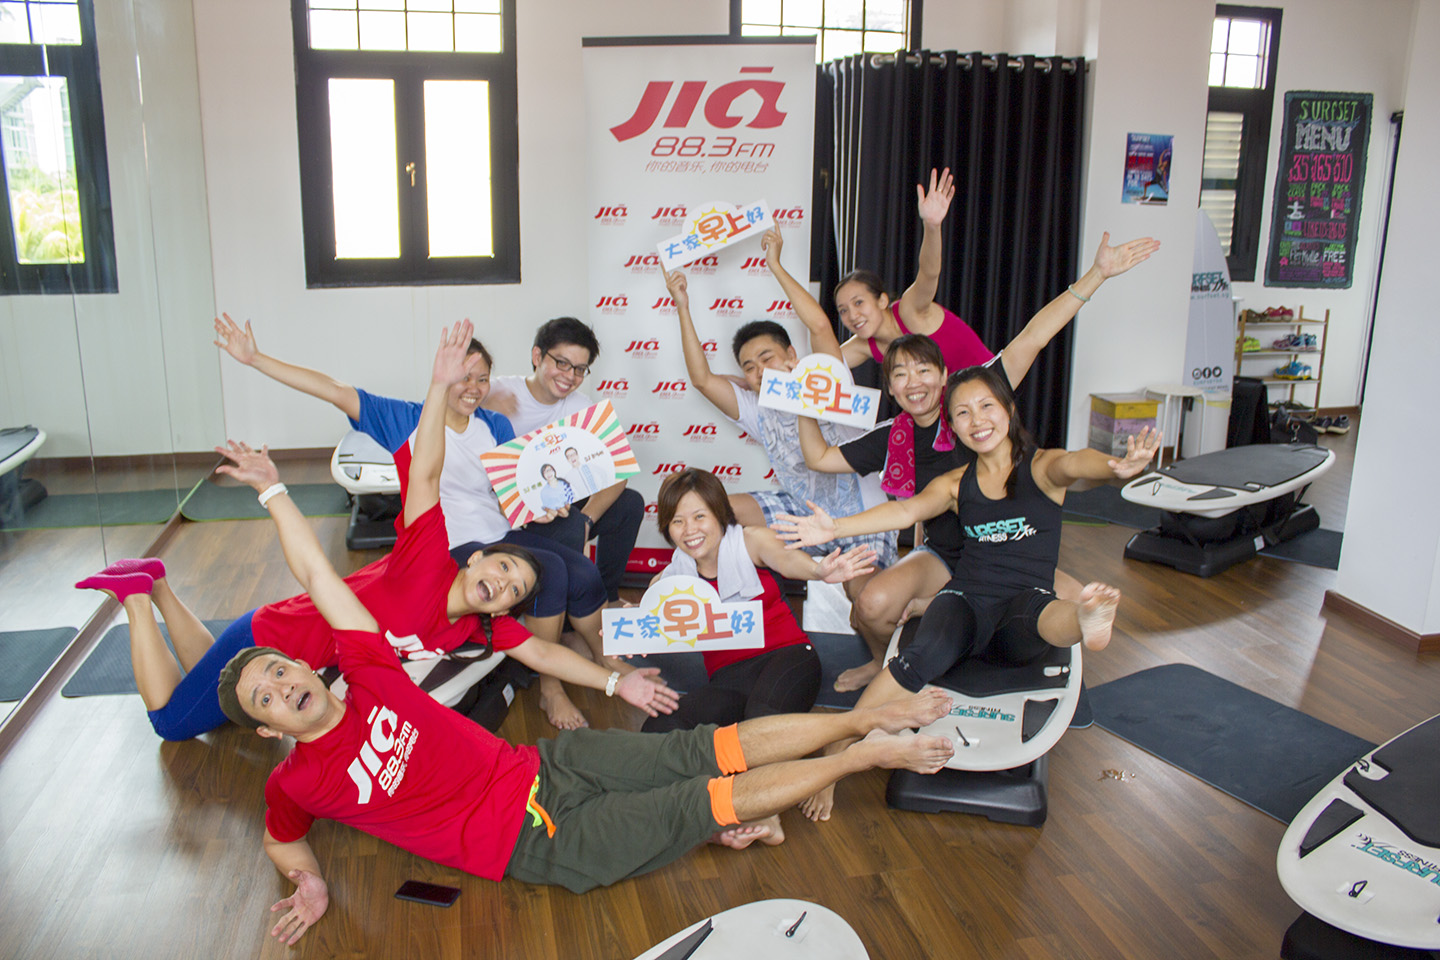 883 jia fm surfset fitness class over